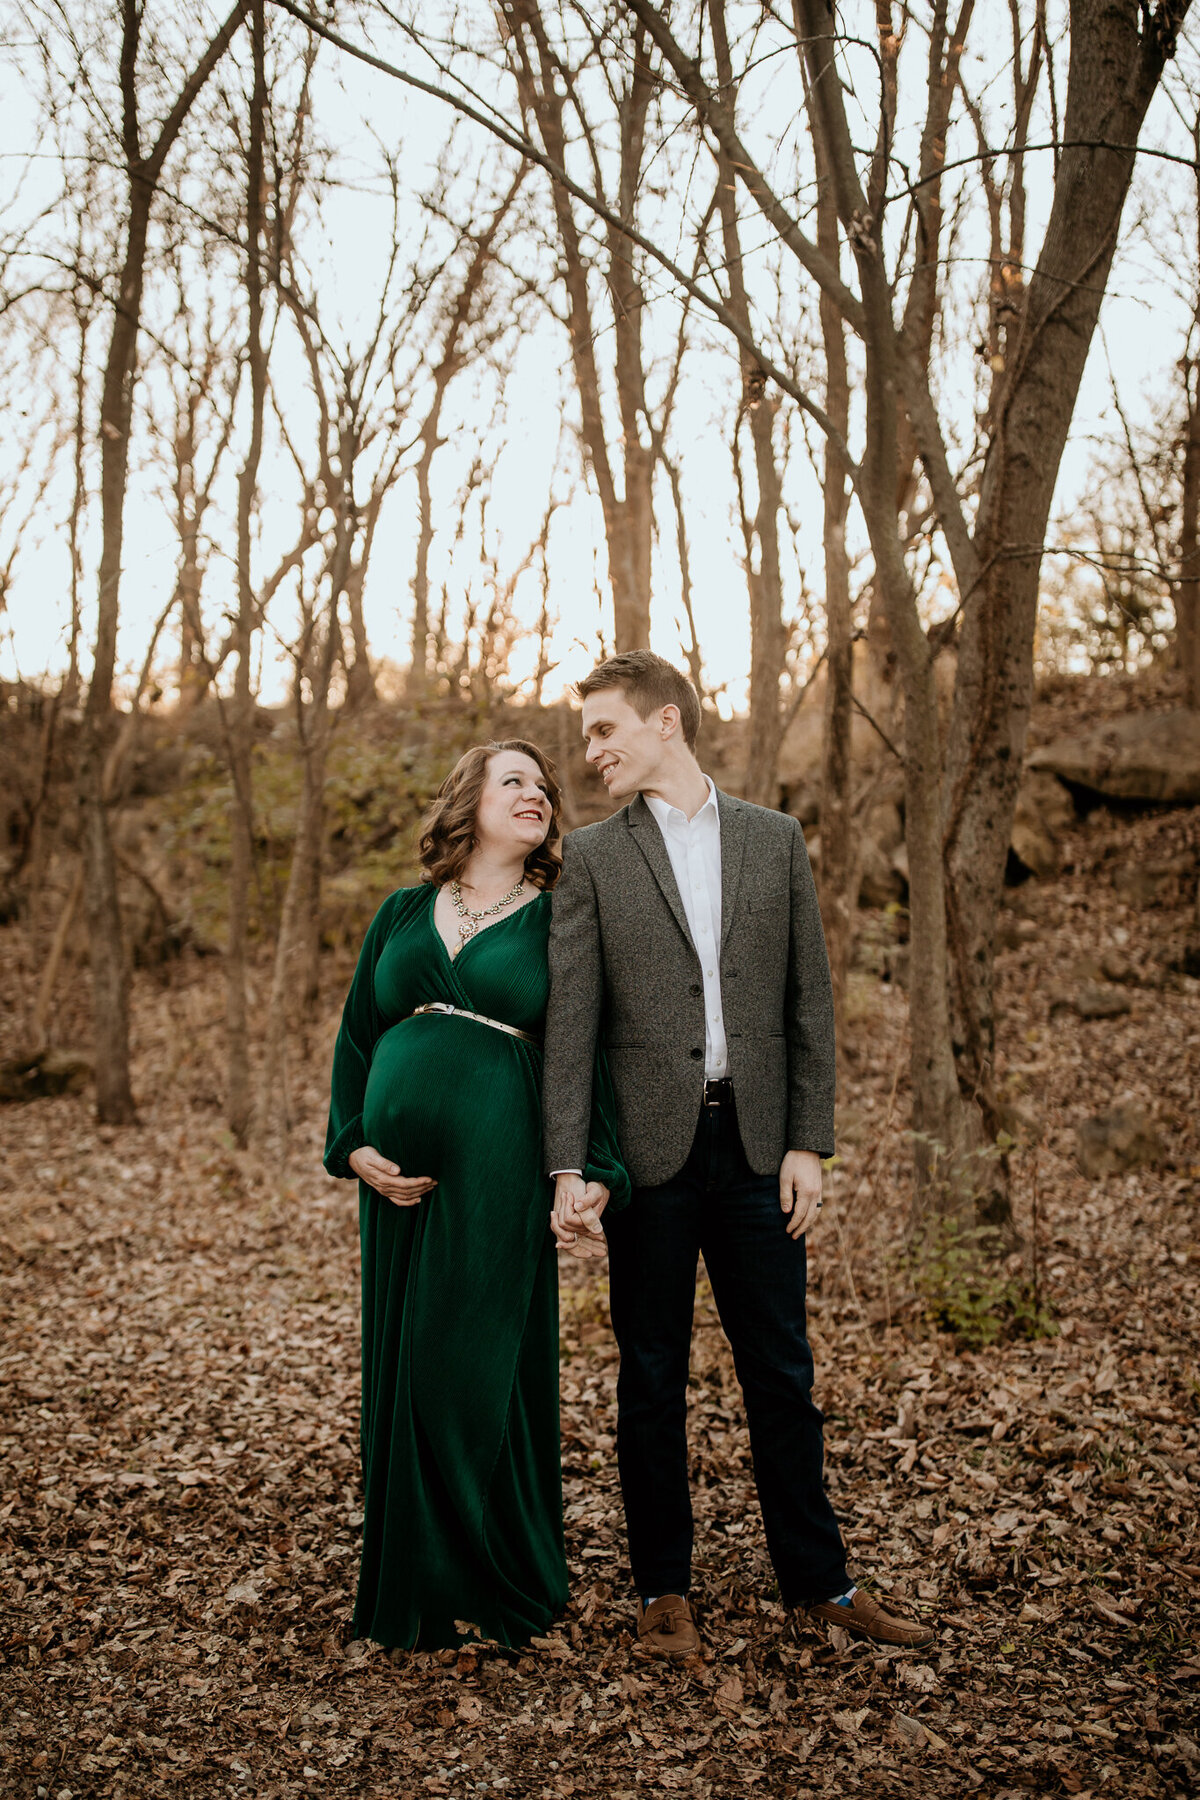 Katie Todd Maternity Photographer Wichita Kansas Andrea Corwin Photography web (33 of 46)